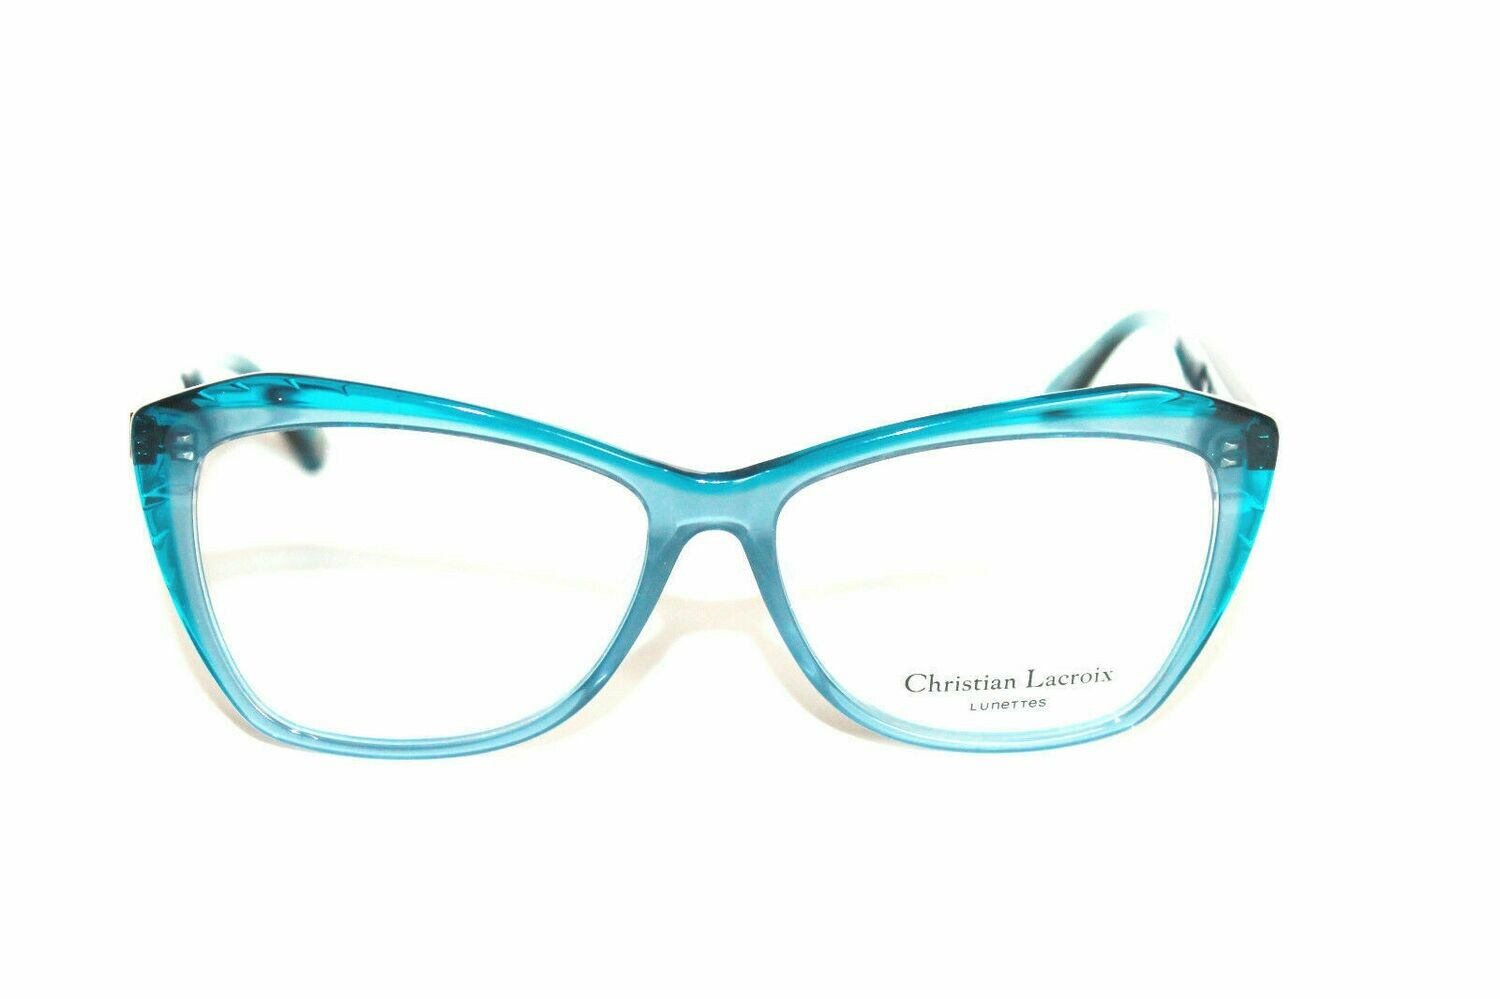 Christian Lacroix Eyeglasses CL1077 Bleu New Authentic 55mm Case Included